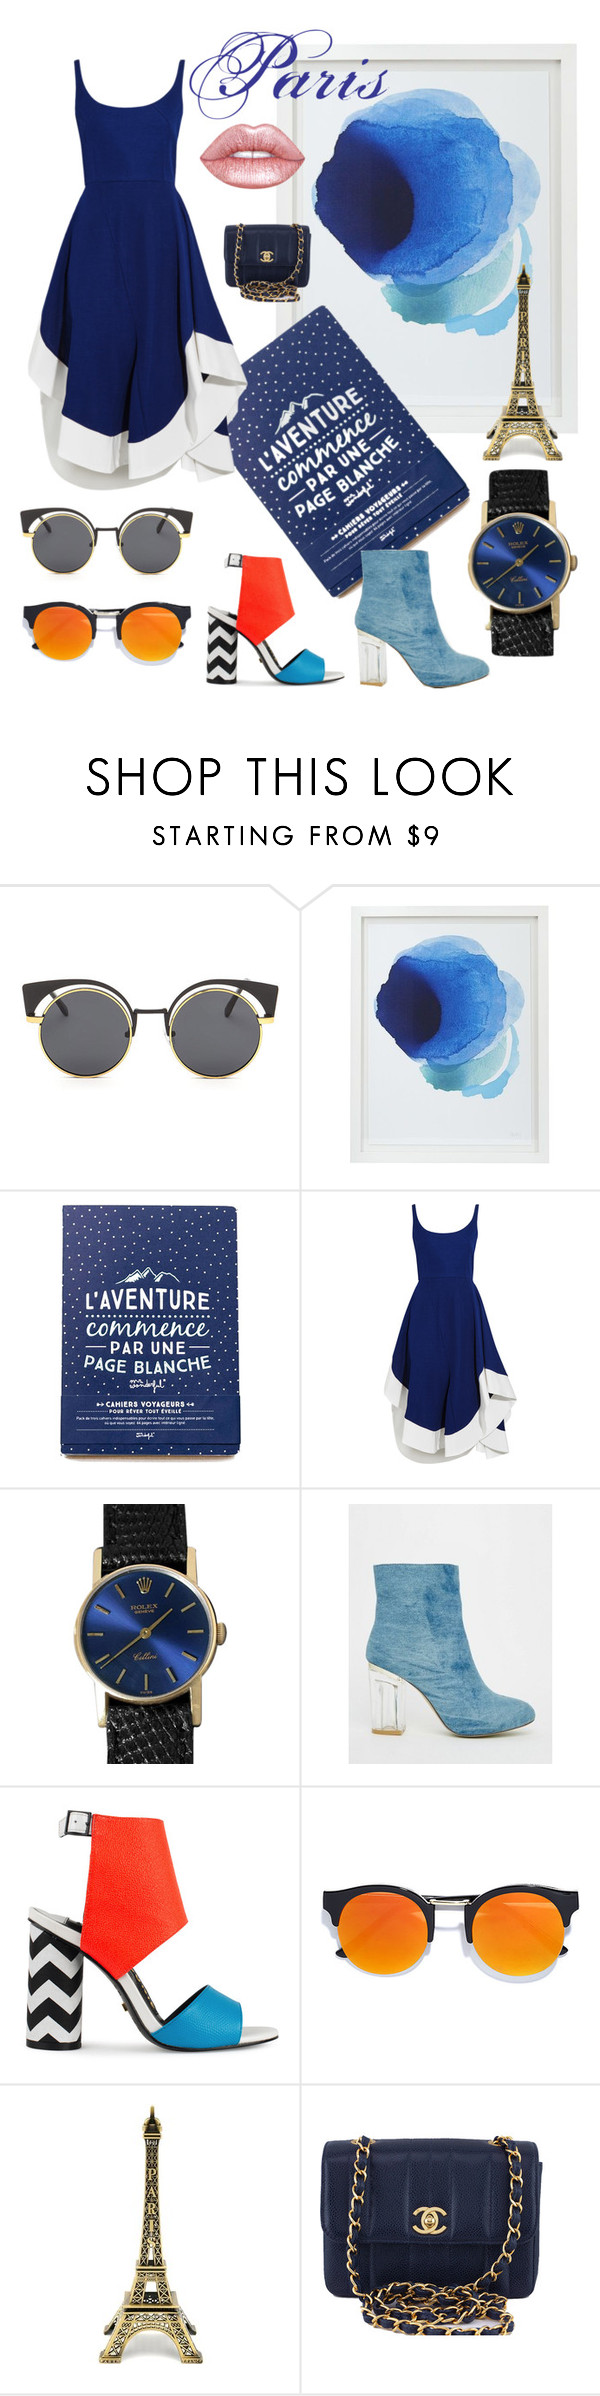 """Parisian blues"" by beanpod ❤ liked on Polyvore featuring Crate and Barrel, Esteban Cortazar, Rolex, Public Desire, Kat Maconie, LULUS, Chanel and Lime Crime"